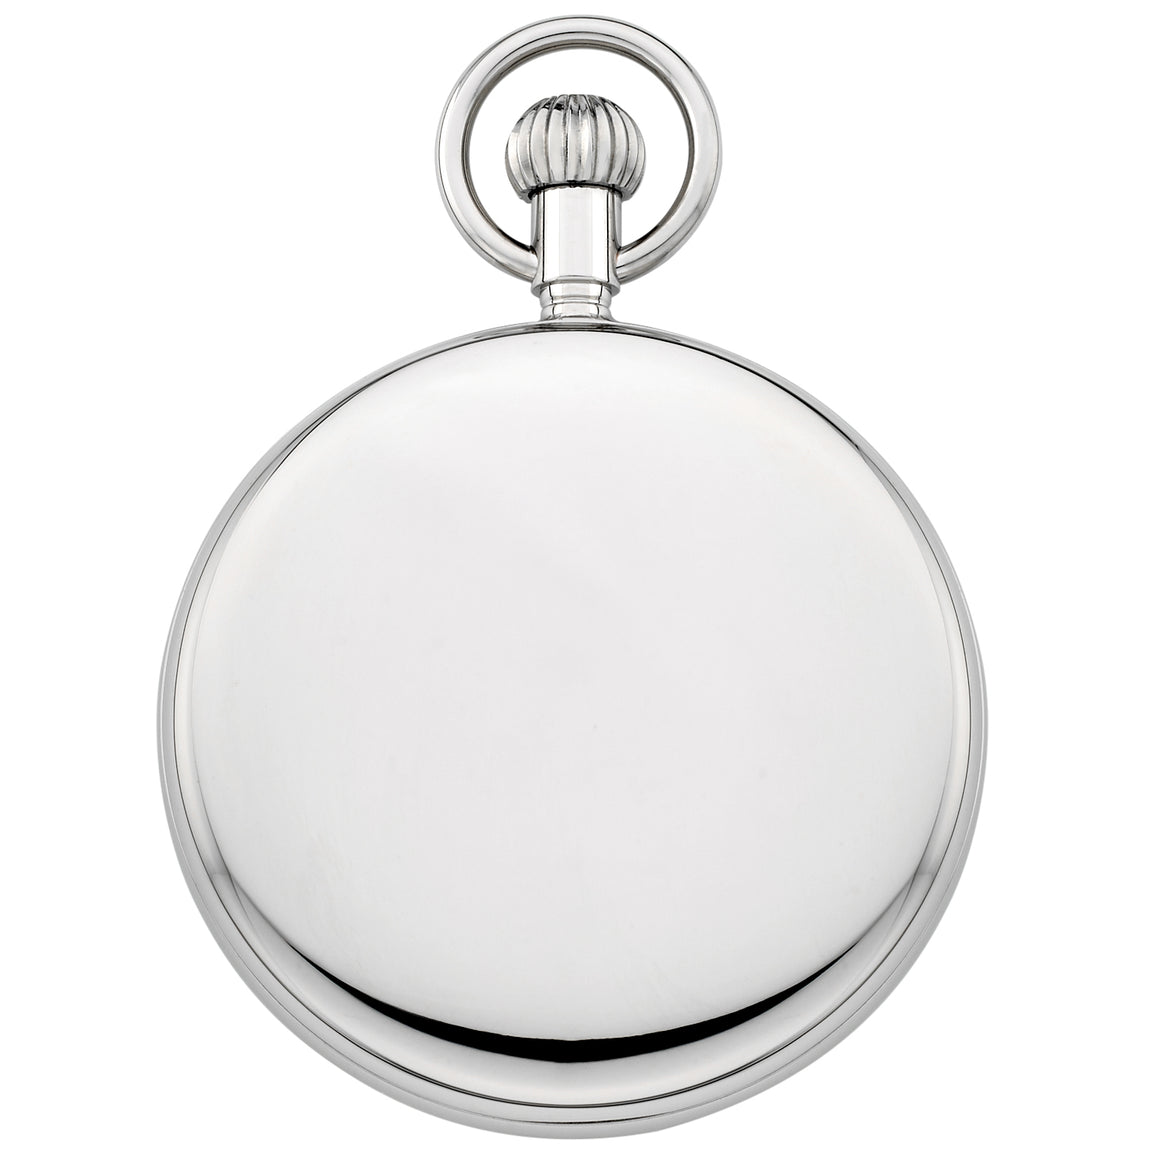 Gotham Men's Silver-Tone Mechanical Hand Wind Railroad Pocket Watch # GWC14104SB - Gotham Watch